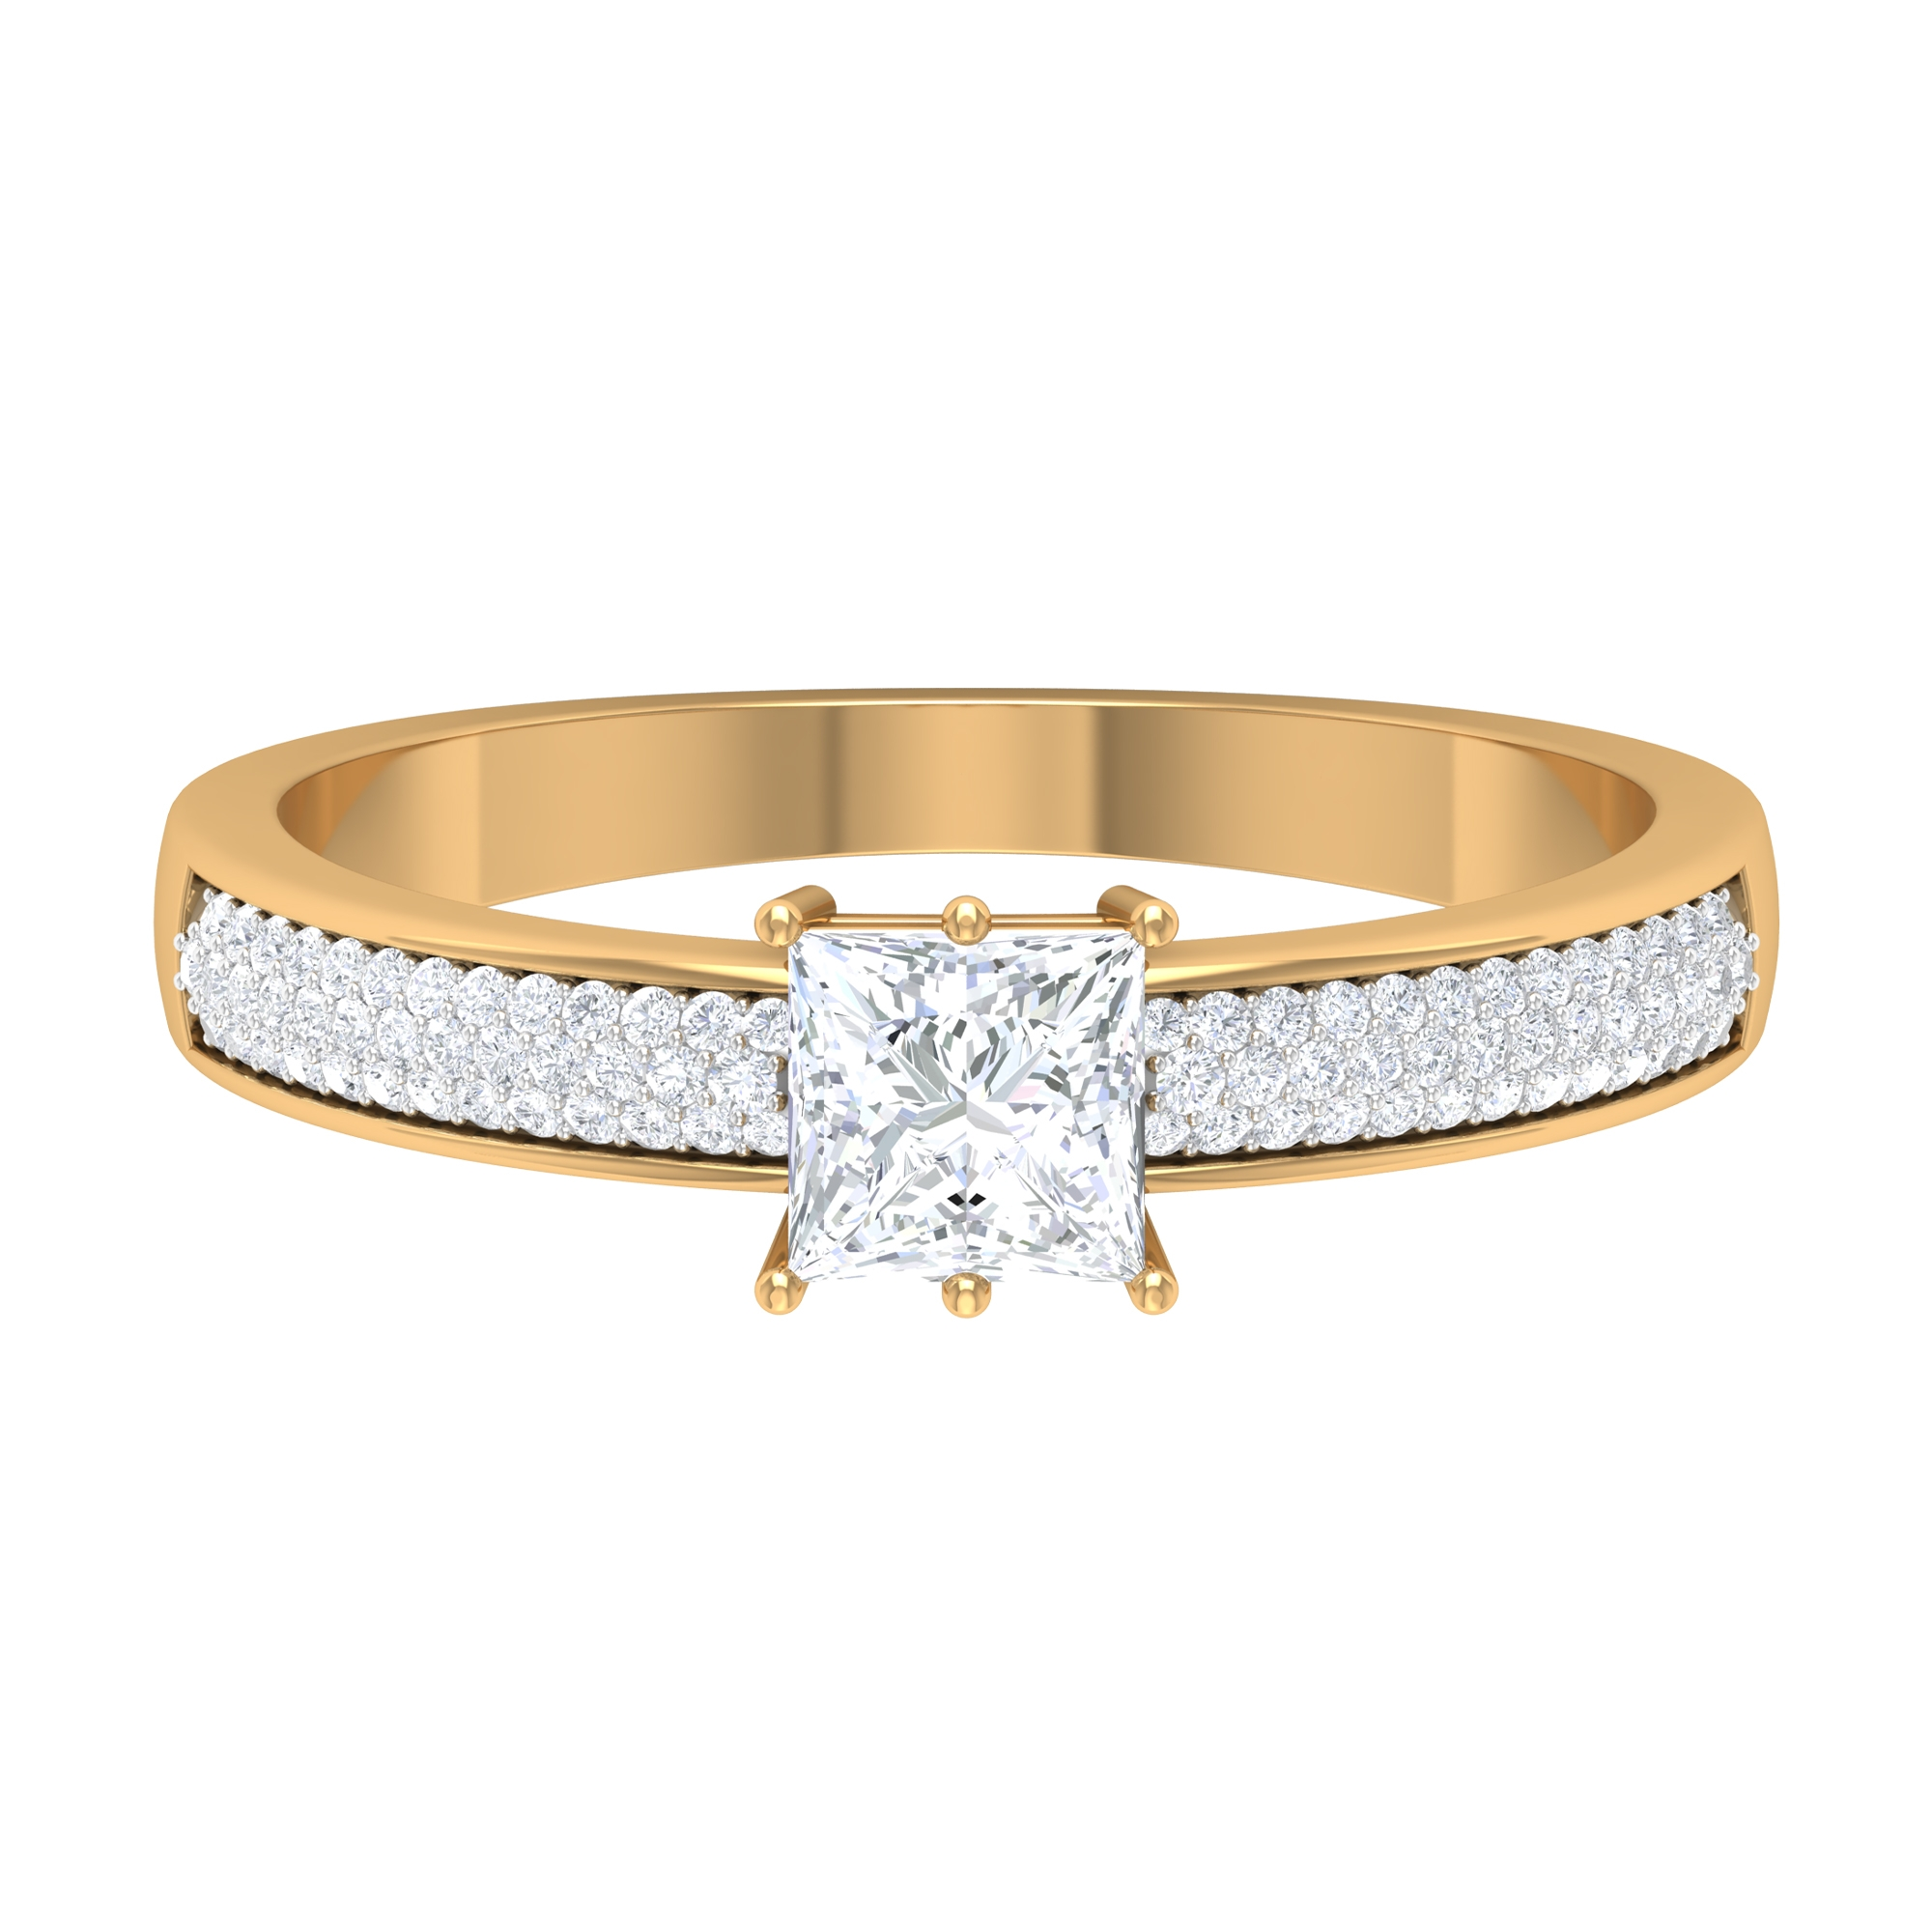 4.5 MM Princess Cut Solitaire Diamond Ring in 6 Prong Setting with Side Stones